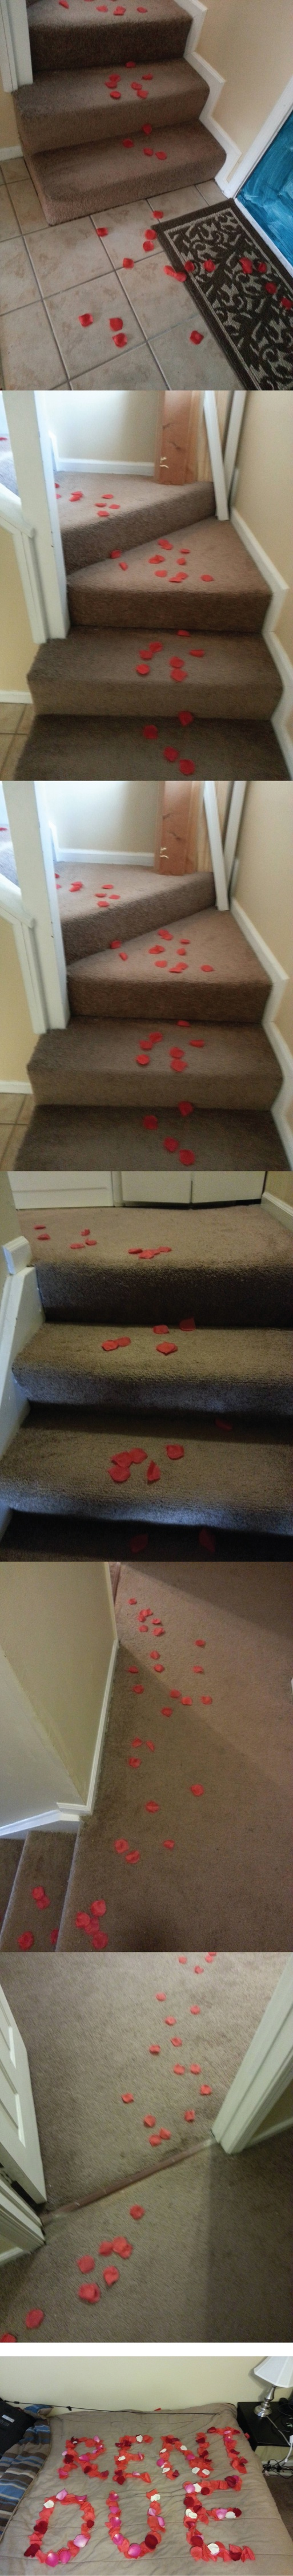 A romantic surprise for the roommate...